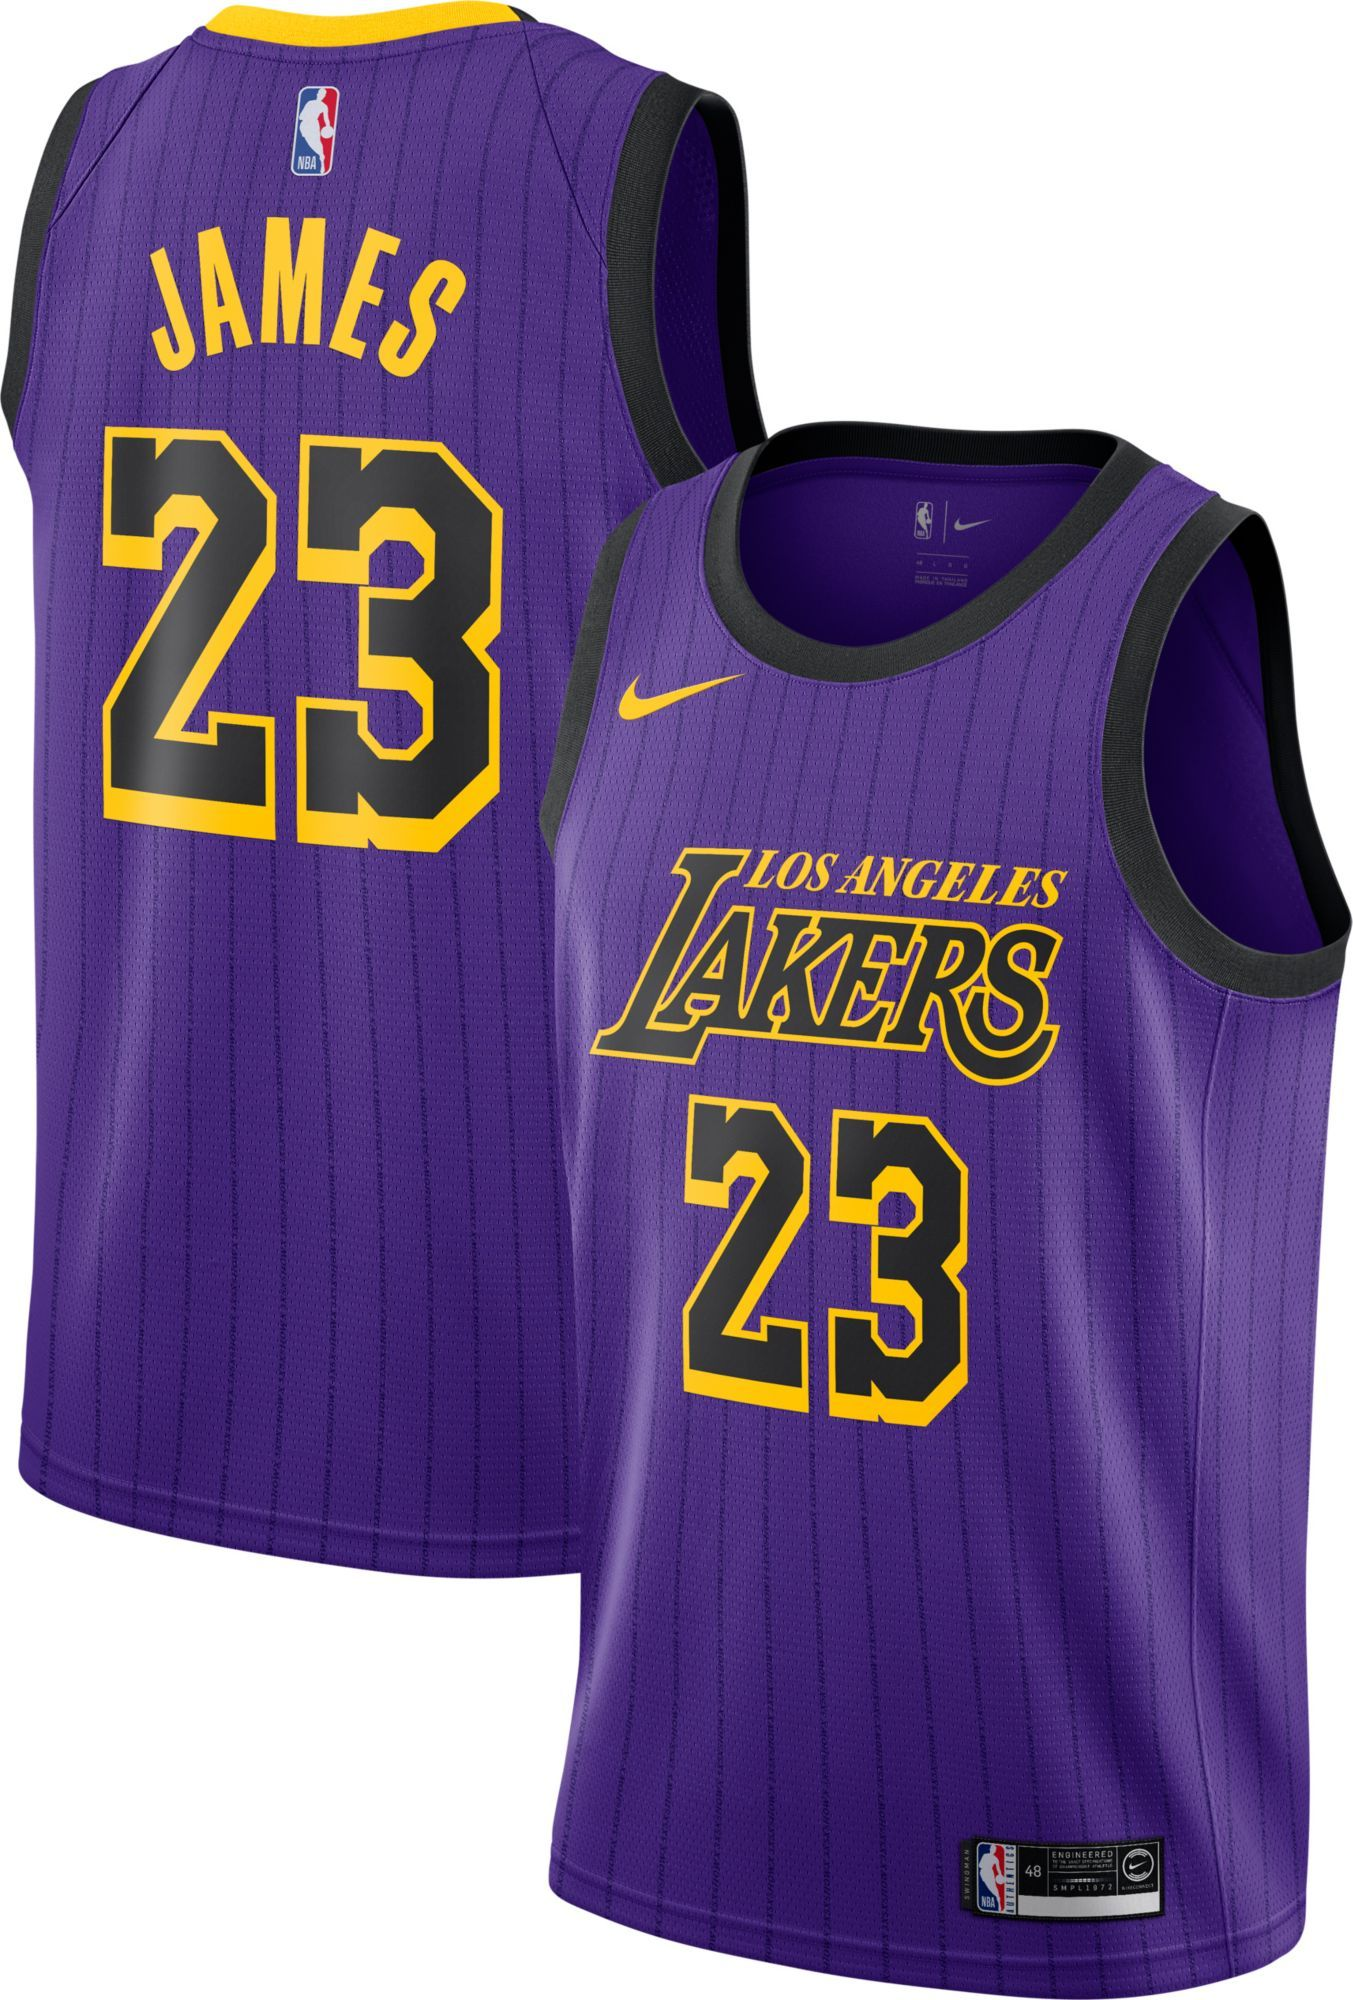 b2d52021aa63 Nike Men s Los Angeles Lakers LeBron James Dri-FIT City Edition Swingman  Jersey